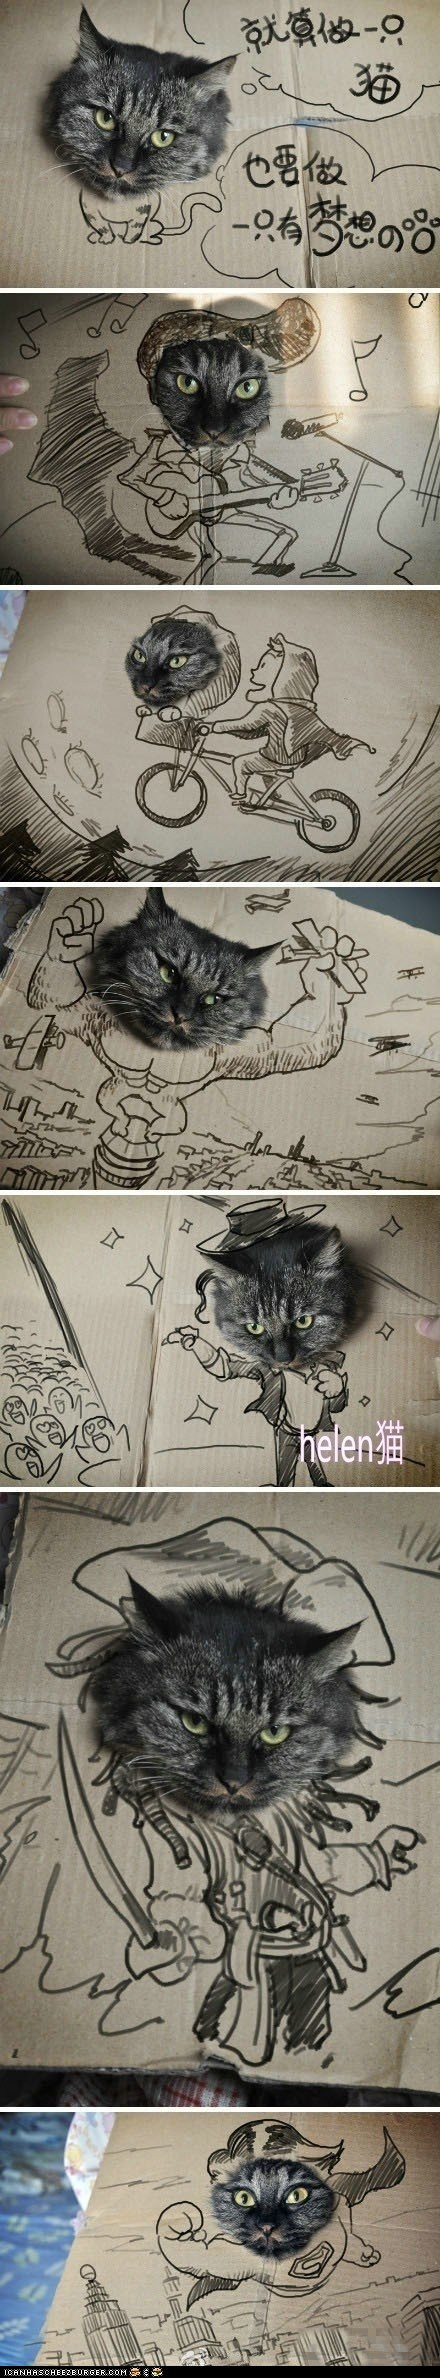 Cardboard Dreams Cat